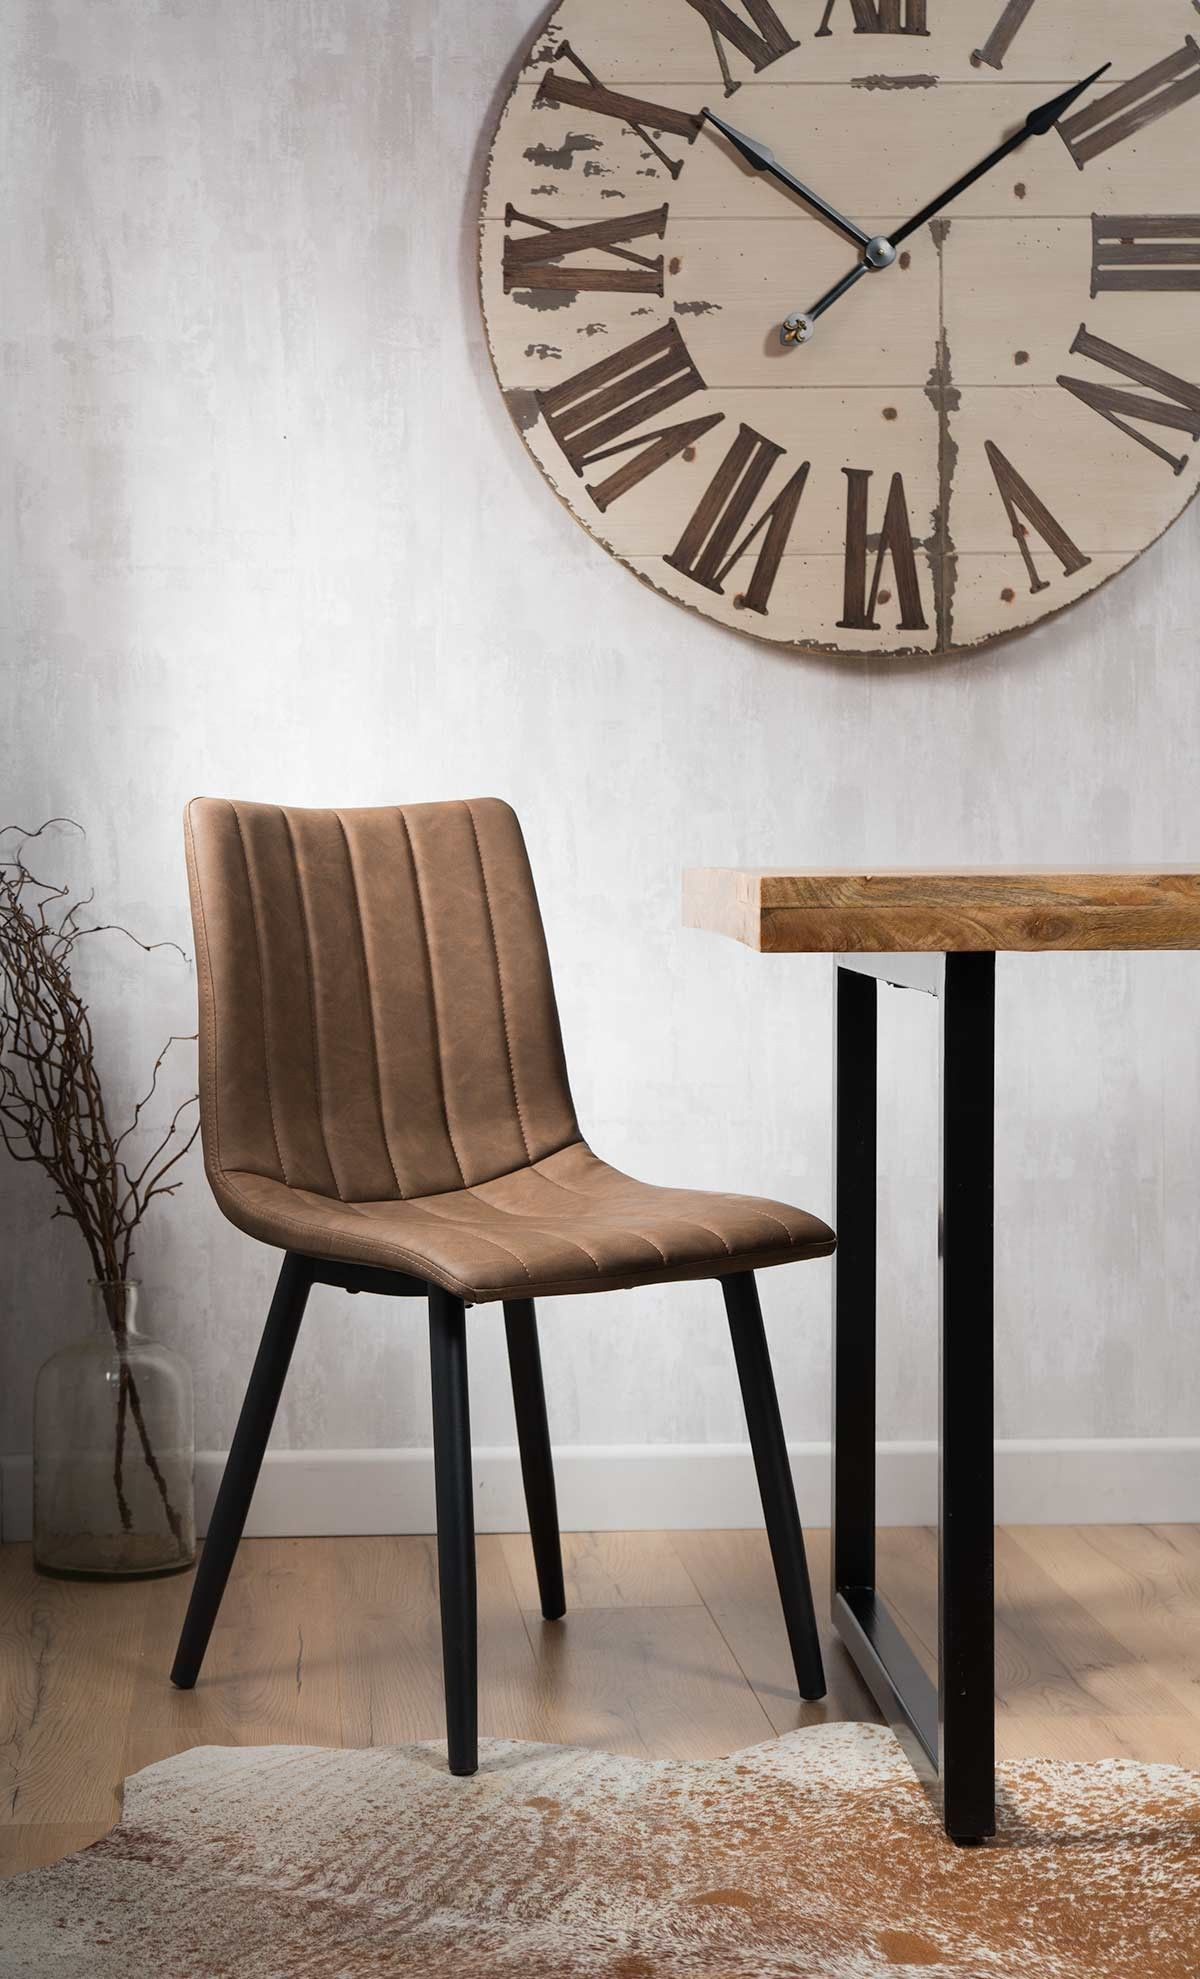 Arizona Leather Dining Chair Vintage Brown Casa Bella Furniture Uk In 2019 Comfortable Dining Chairs Dining Chairs Uk Dining Chairs